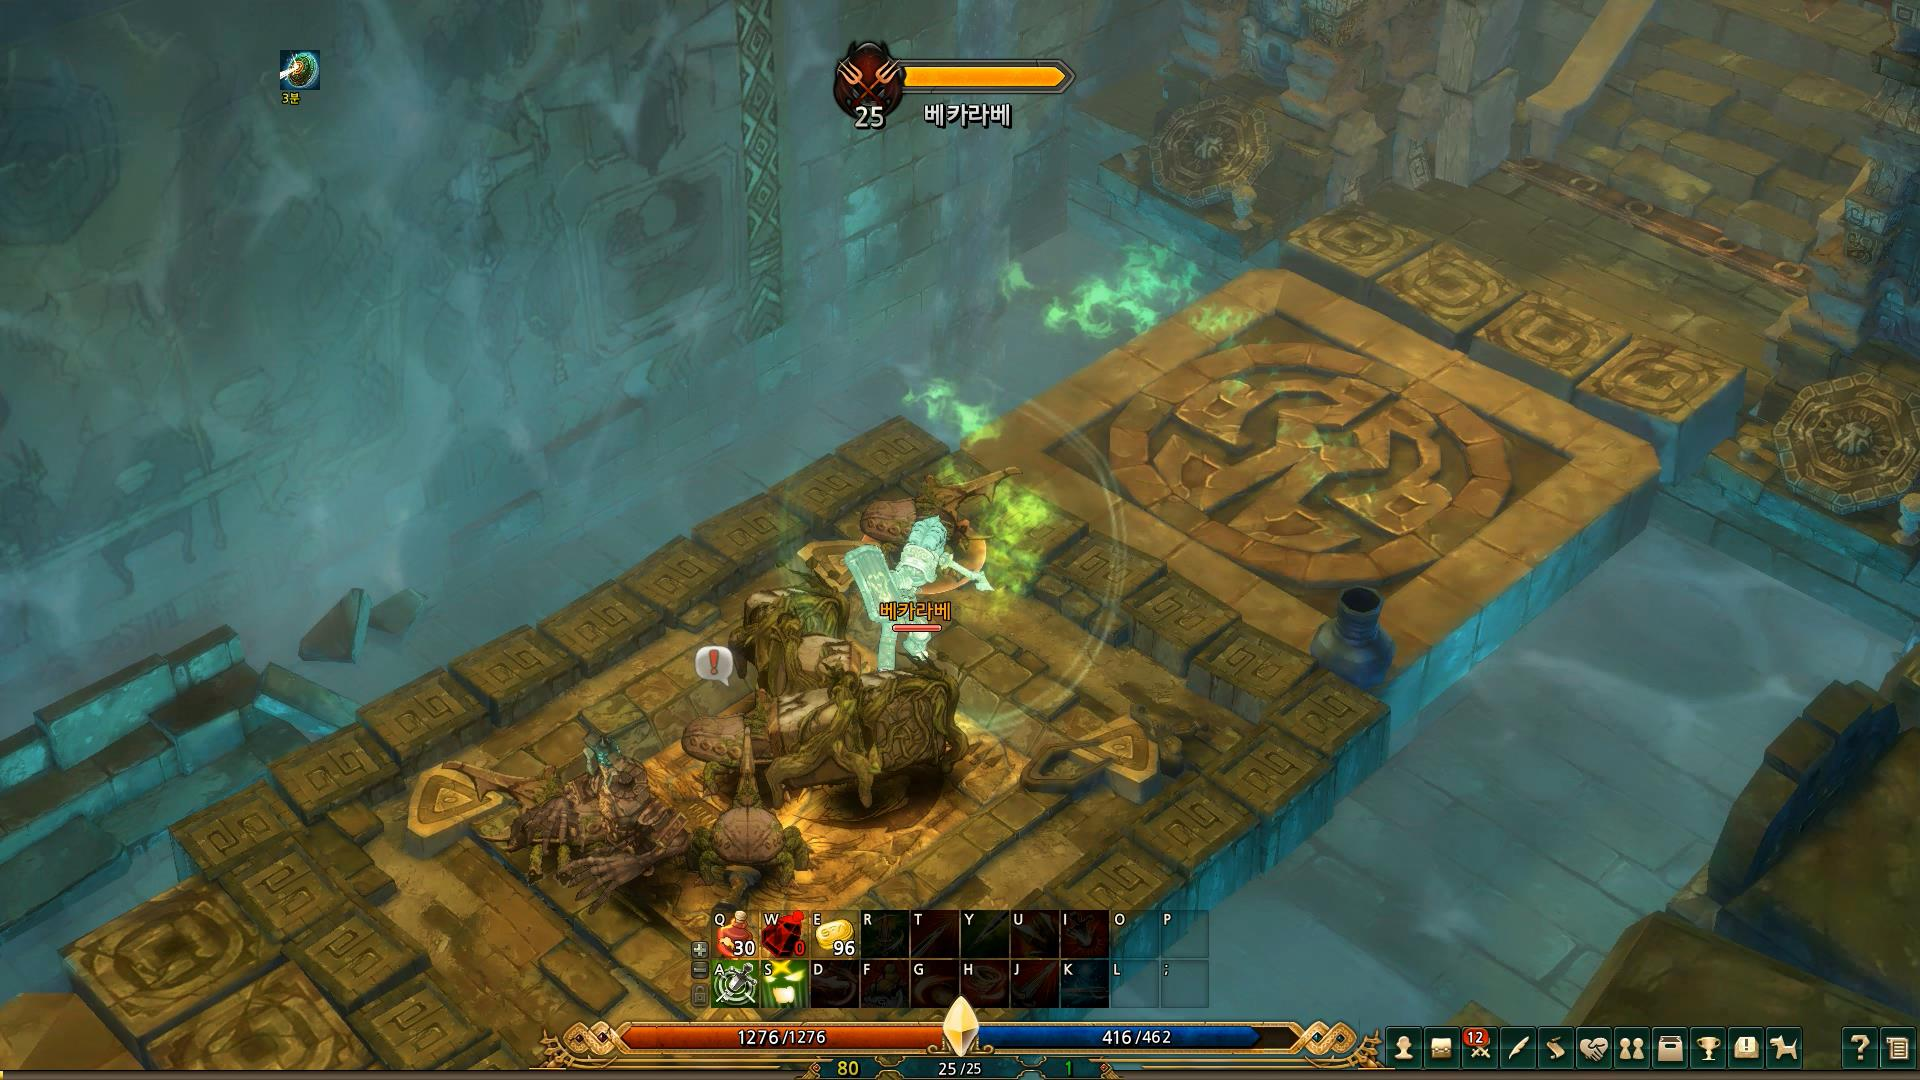 Tree of Savior screenshot 5